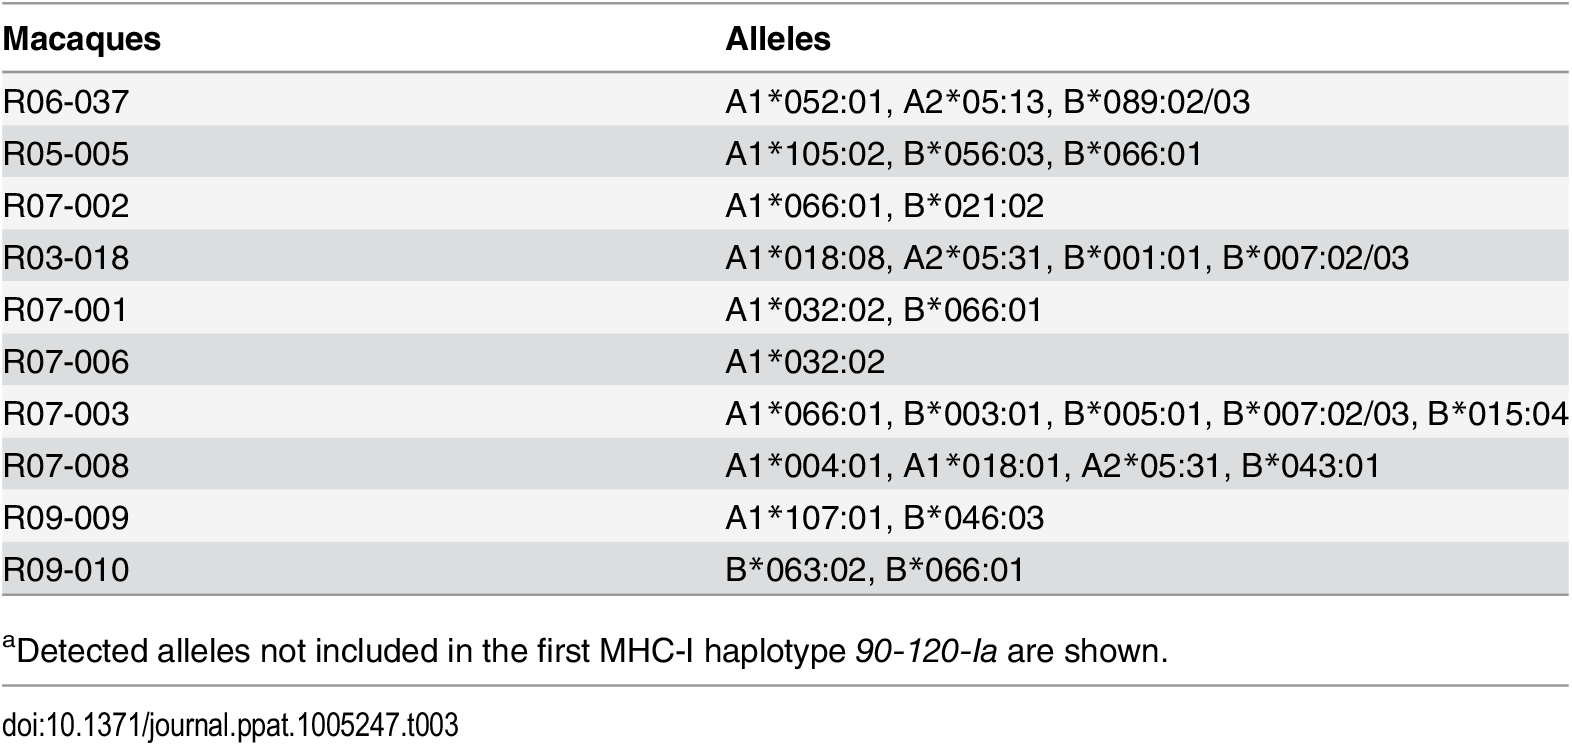 Alleles in the second MHC-I haplotypes in macaques<em class=&quot;ref&quot;><sup>a</sup></em>